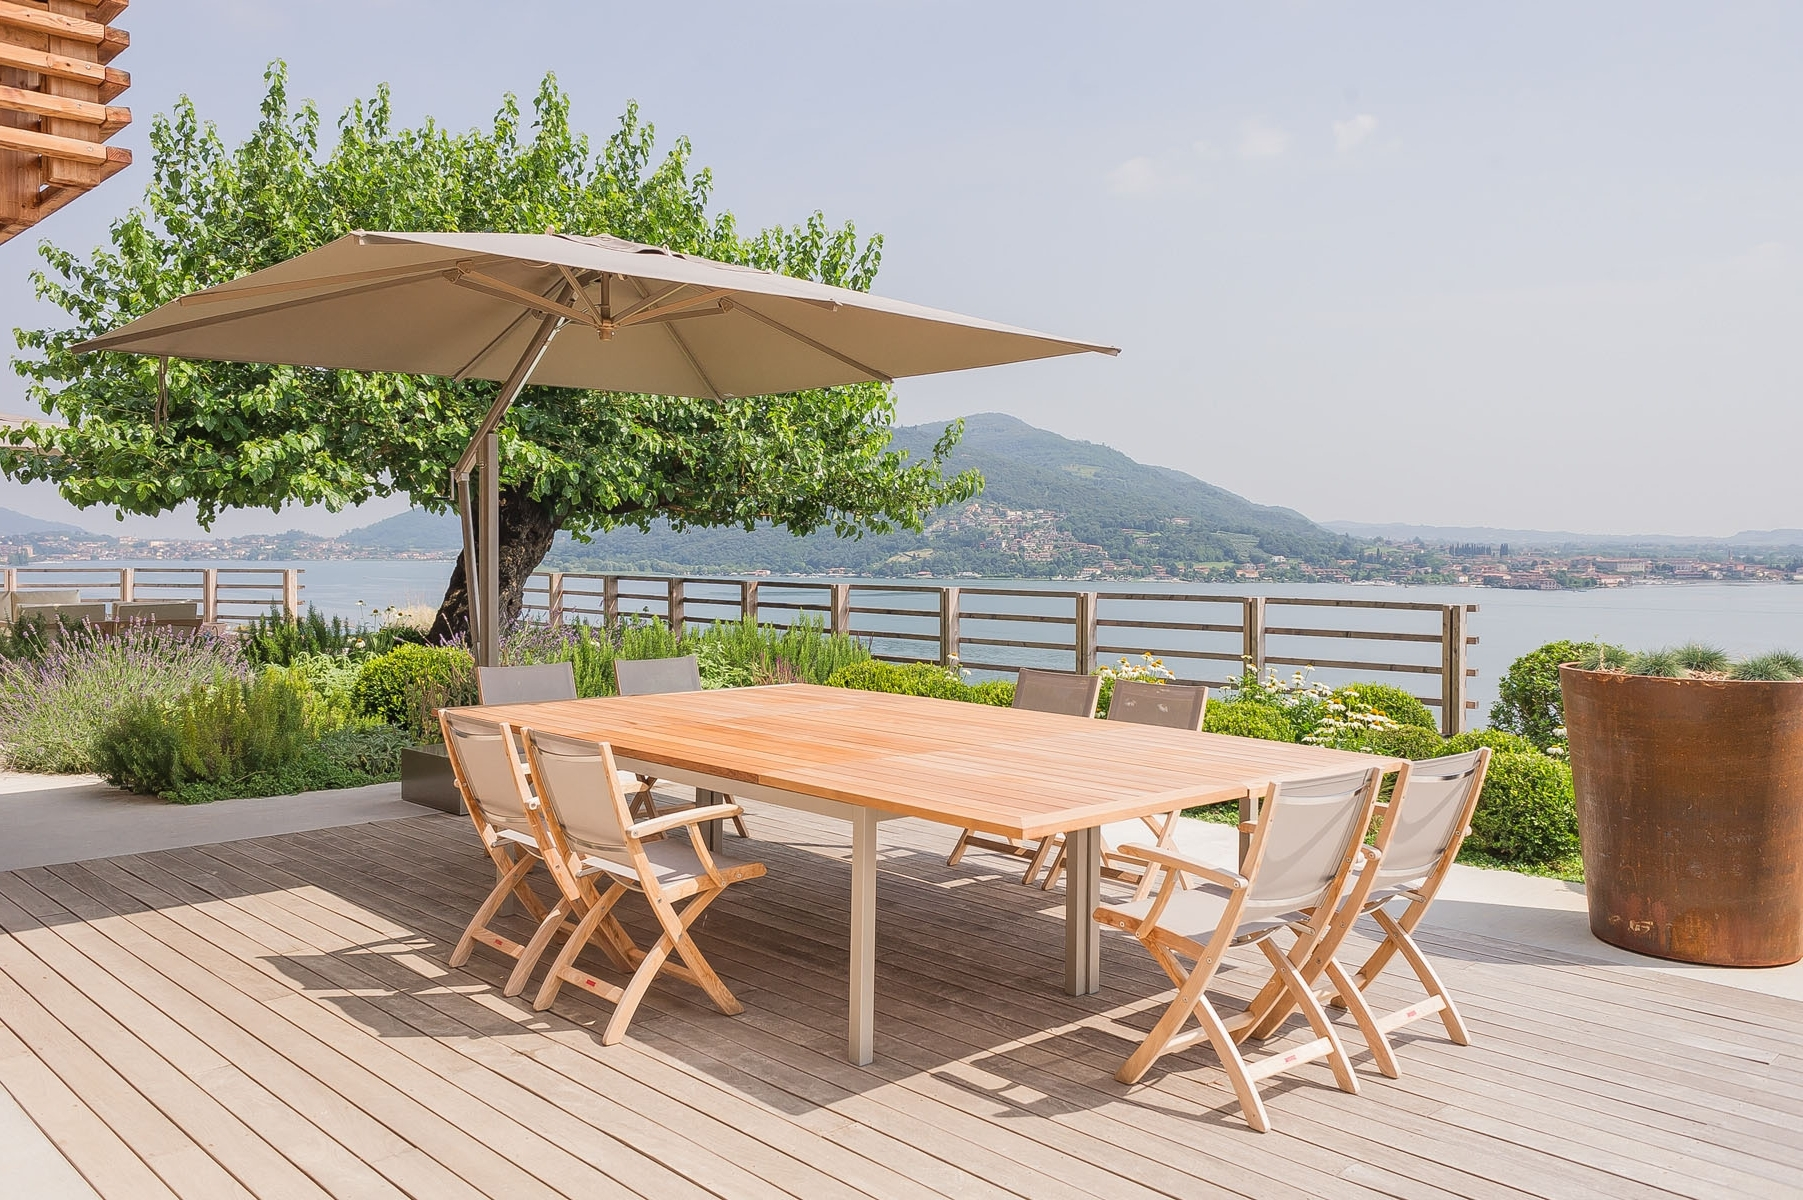 Latest Patio Umbrellas For High Wind Areas With Regard To Choosing The Best Cantilever Umbrella For Your Patio – Poggesi Usa (View 6 of 20)